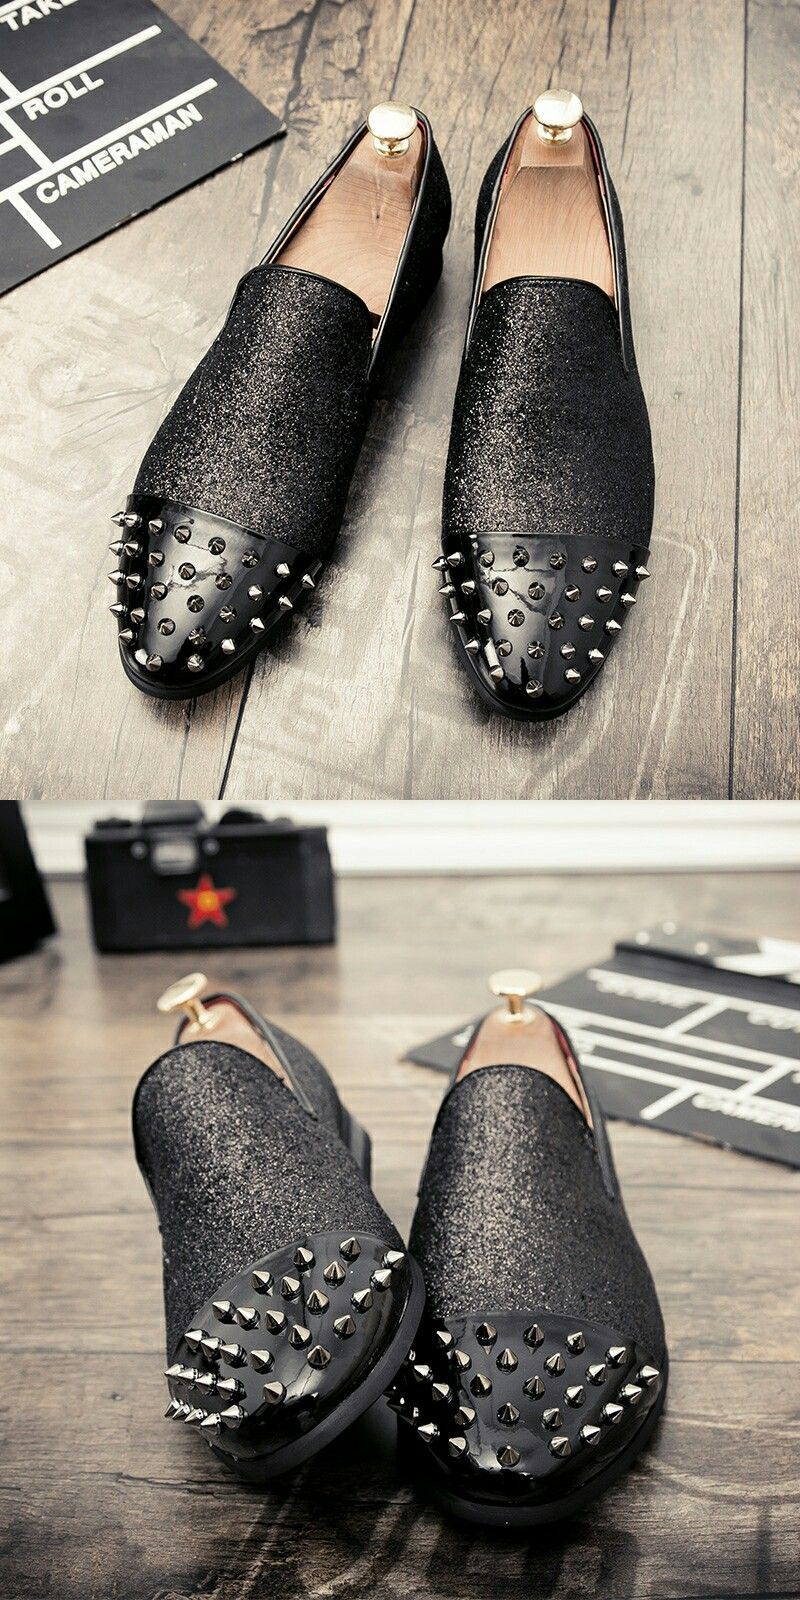 Us ucclick to buyue ectic punk style men loafers toe cap